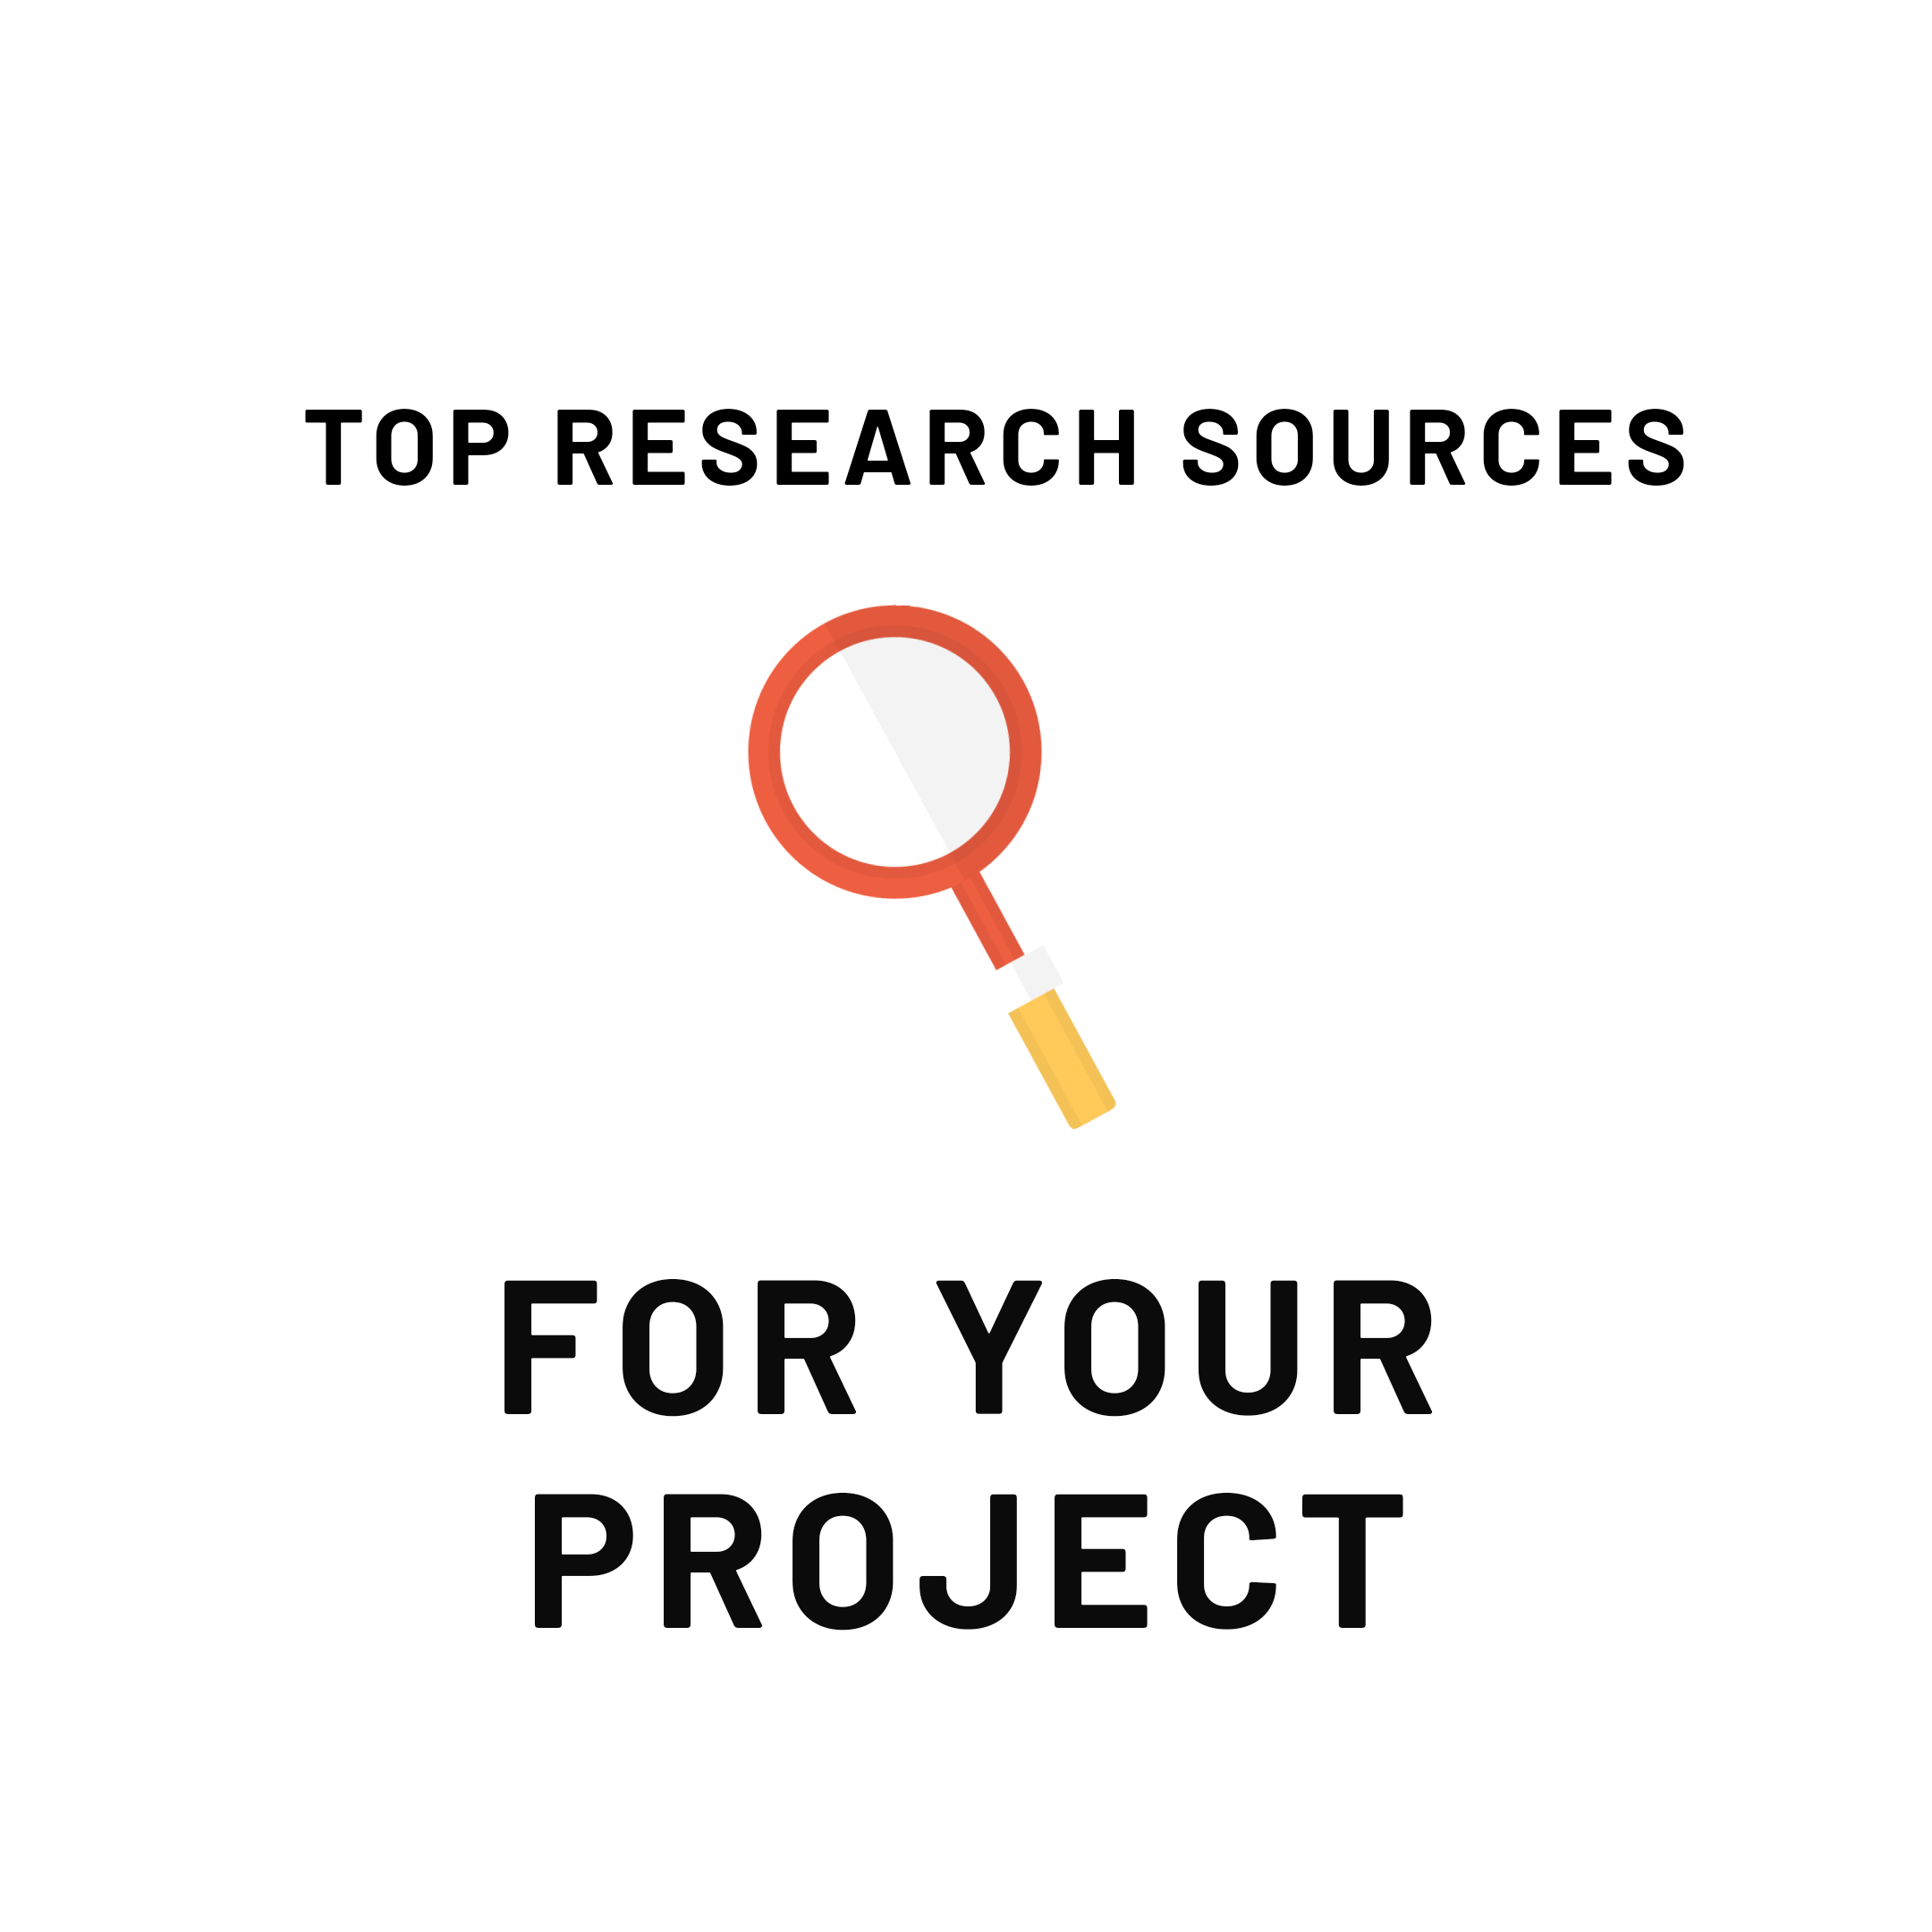 Top research sources for your project